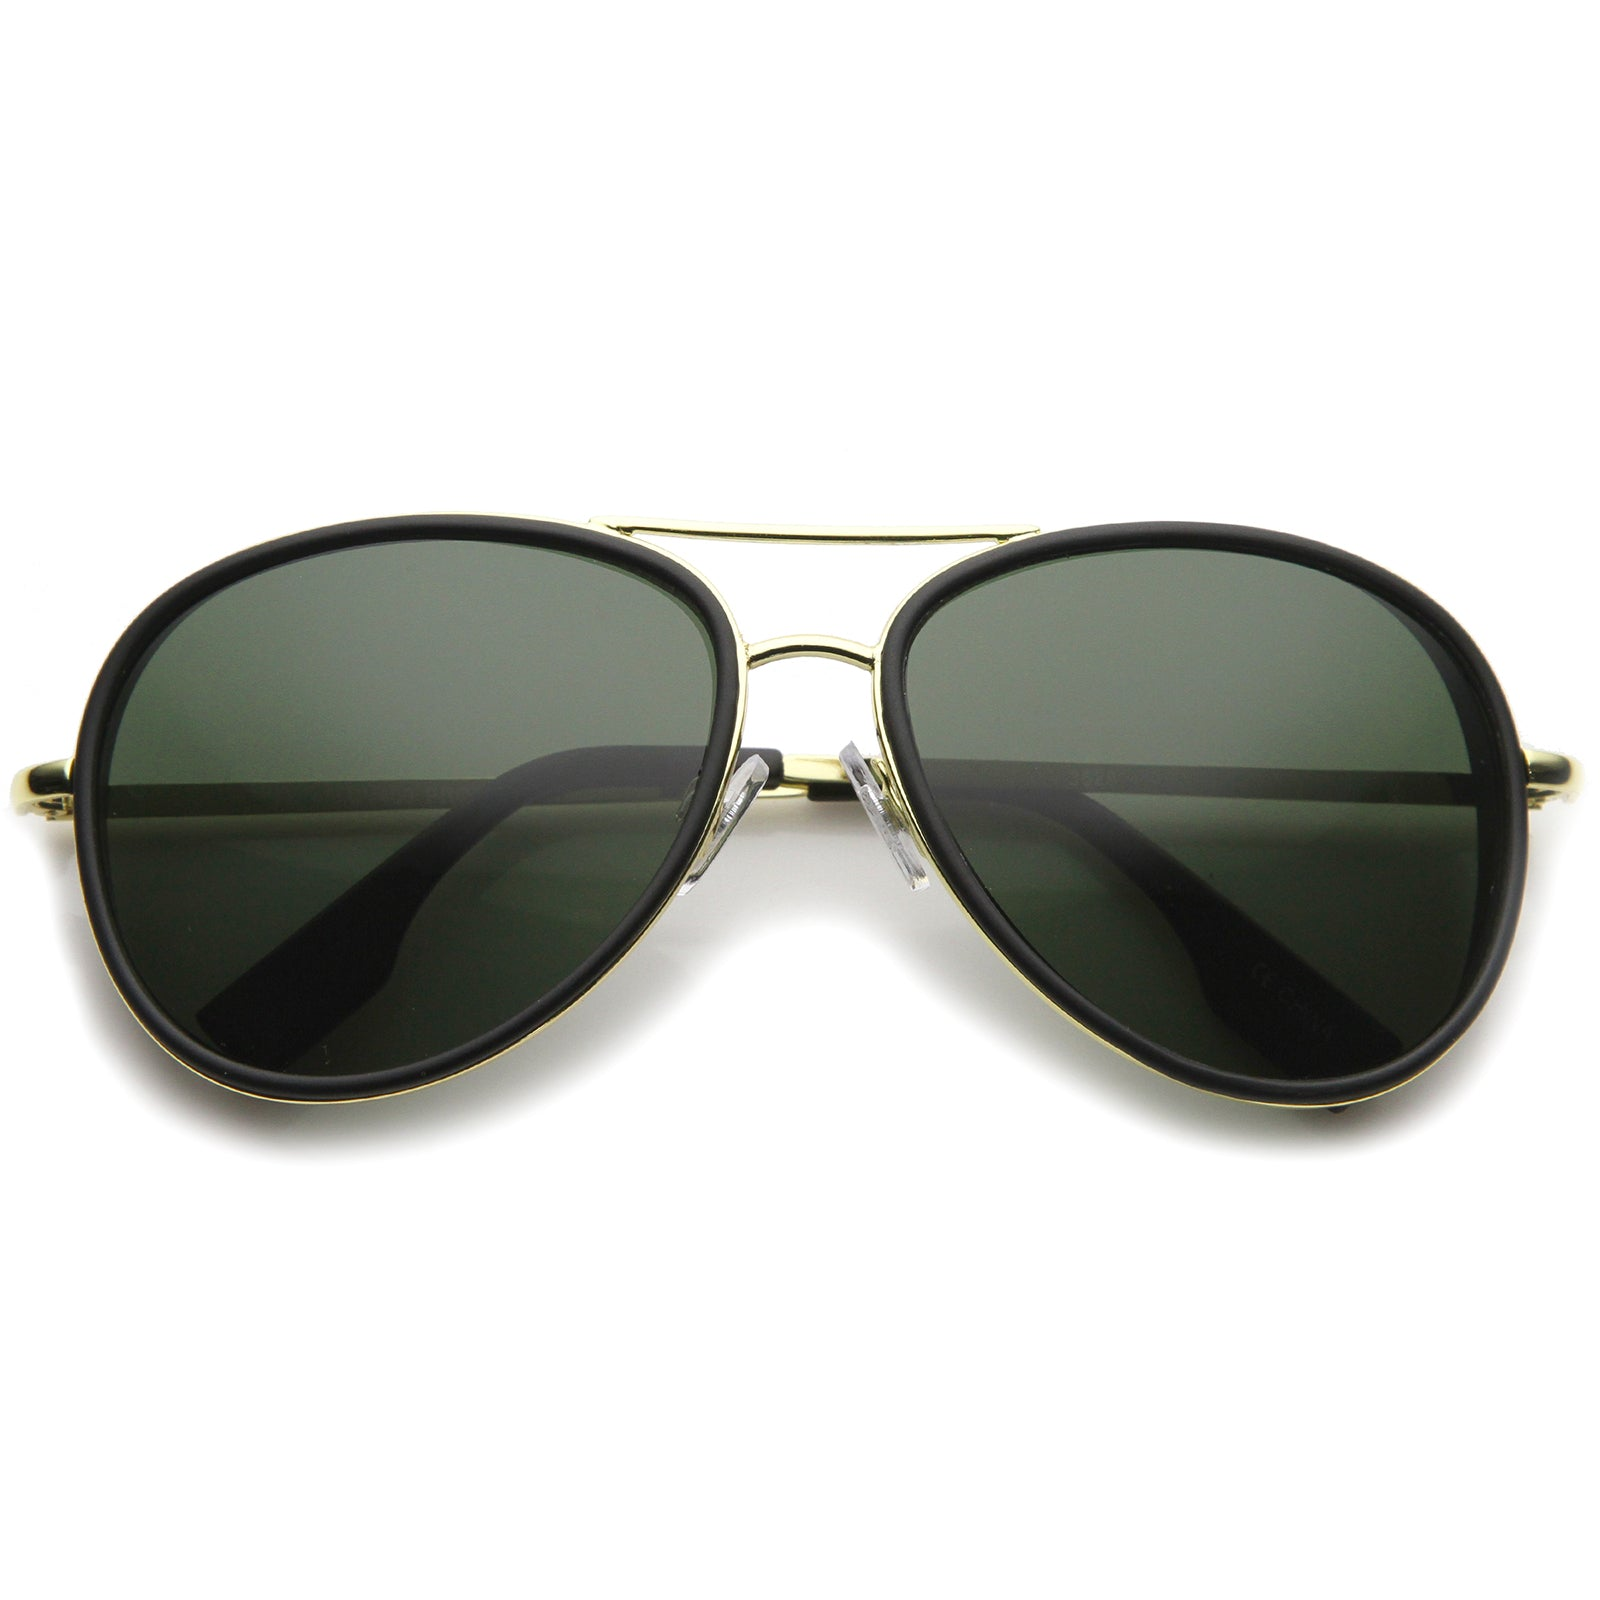 Womens Aviator Sunglasses With UV400 Protected Gradient Lens - sunglass.la - 9